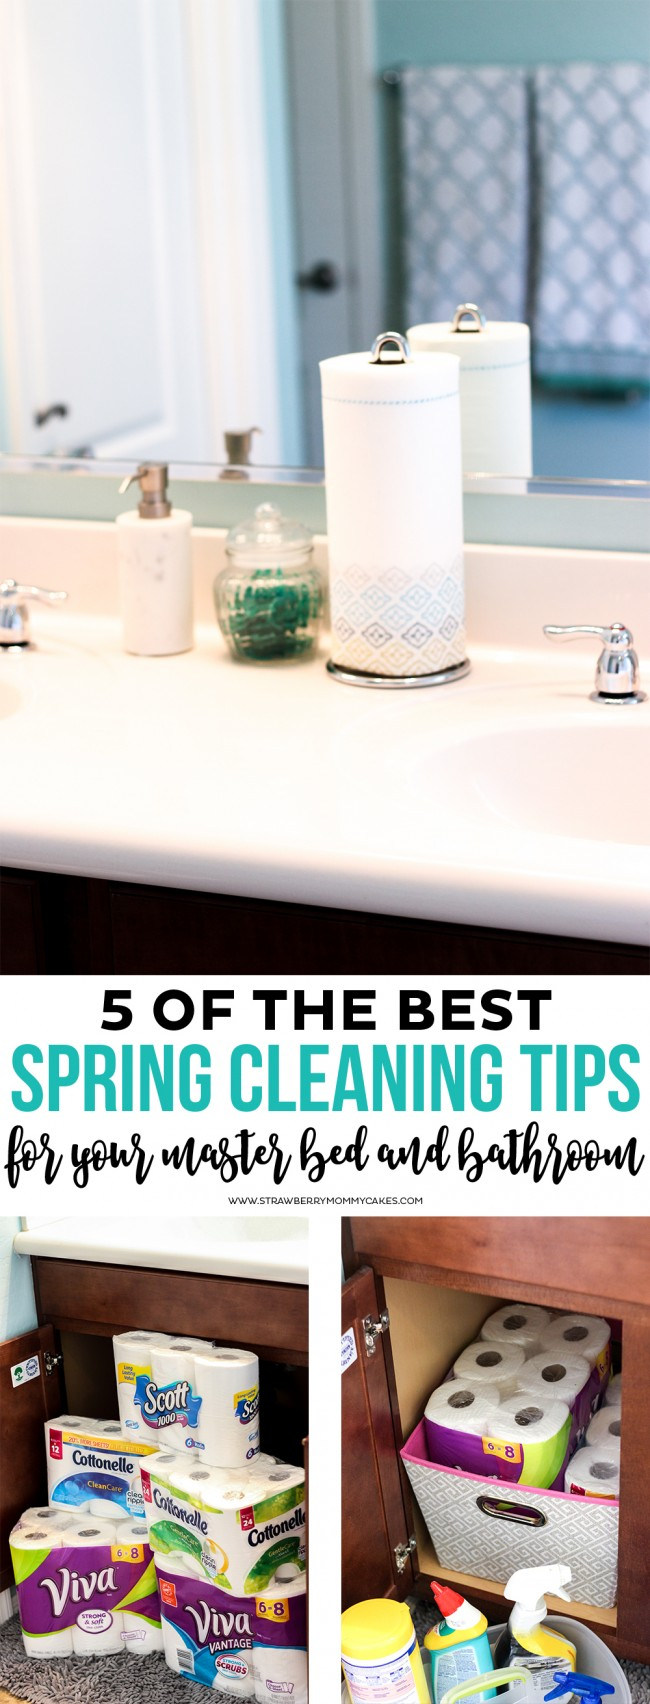 Best Spring Cleaning Tips 5 of the best spring cleaning tips for your master bed and